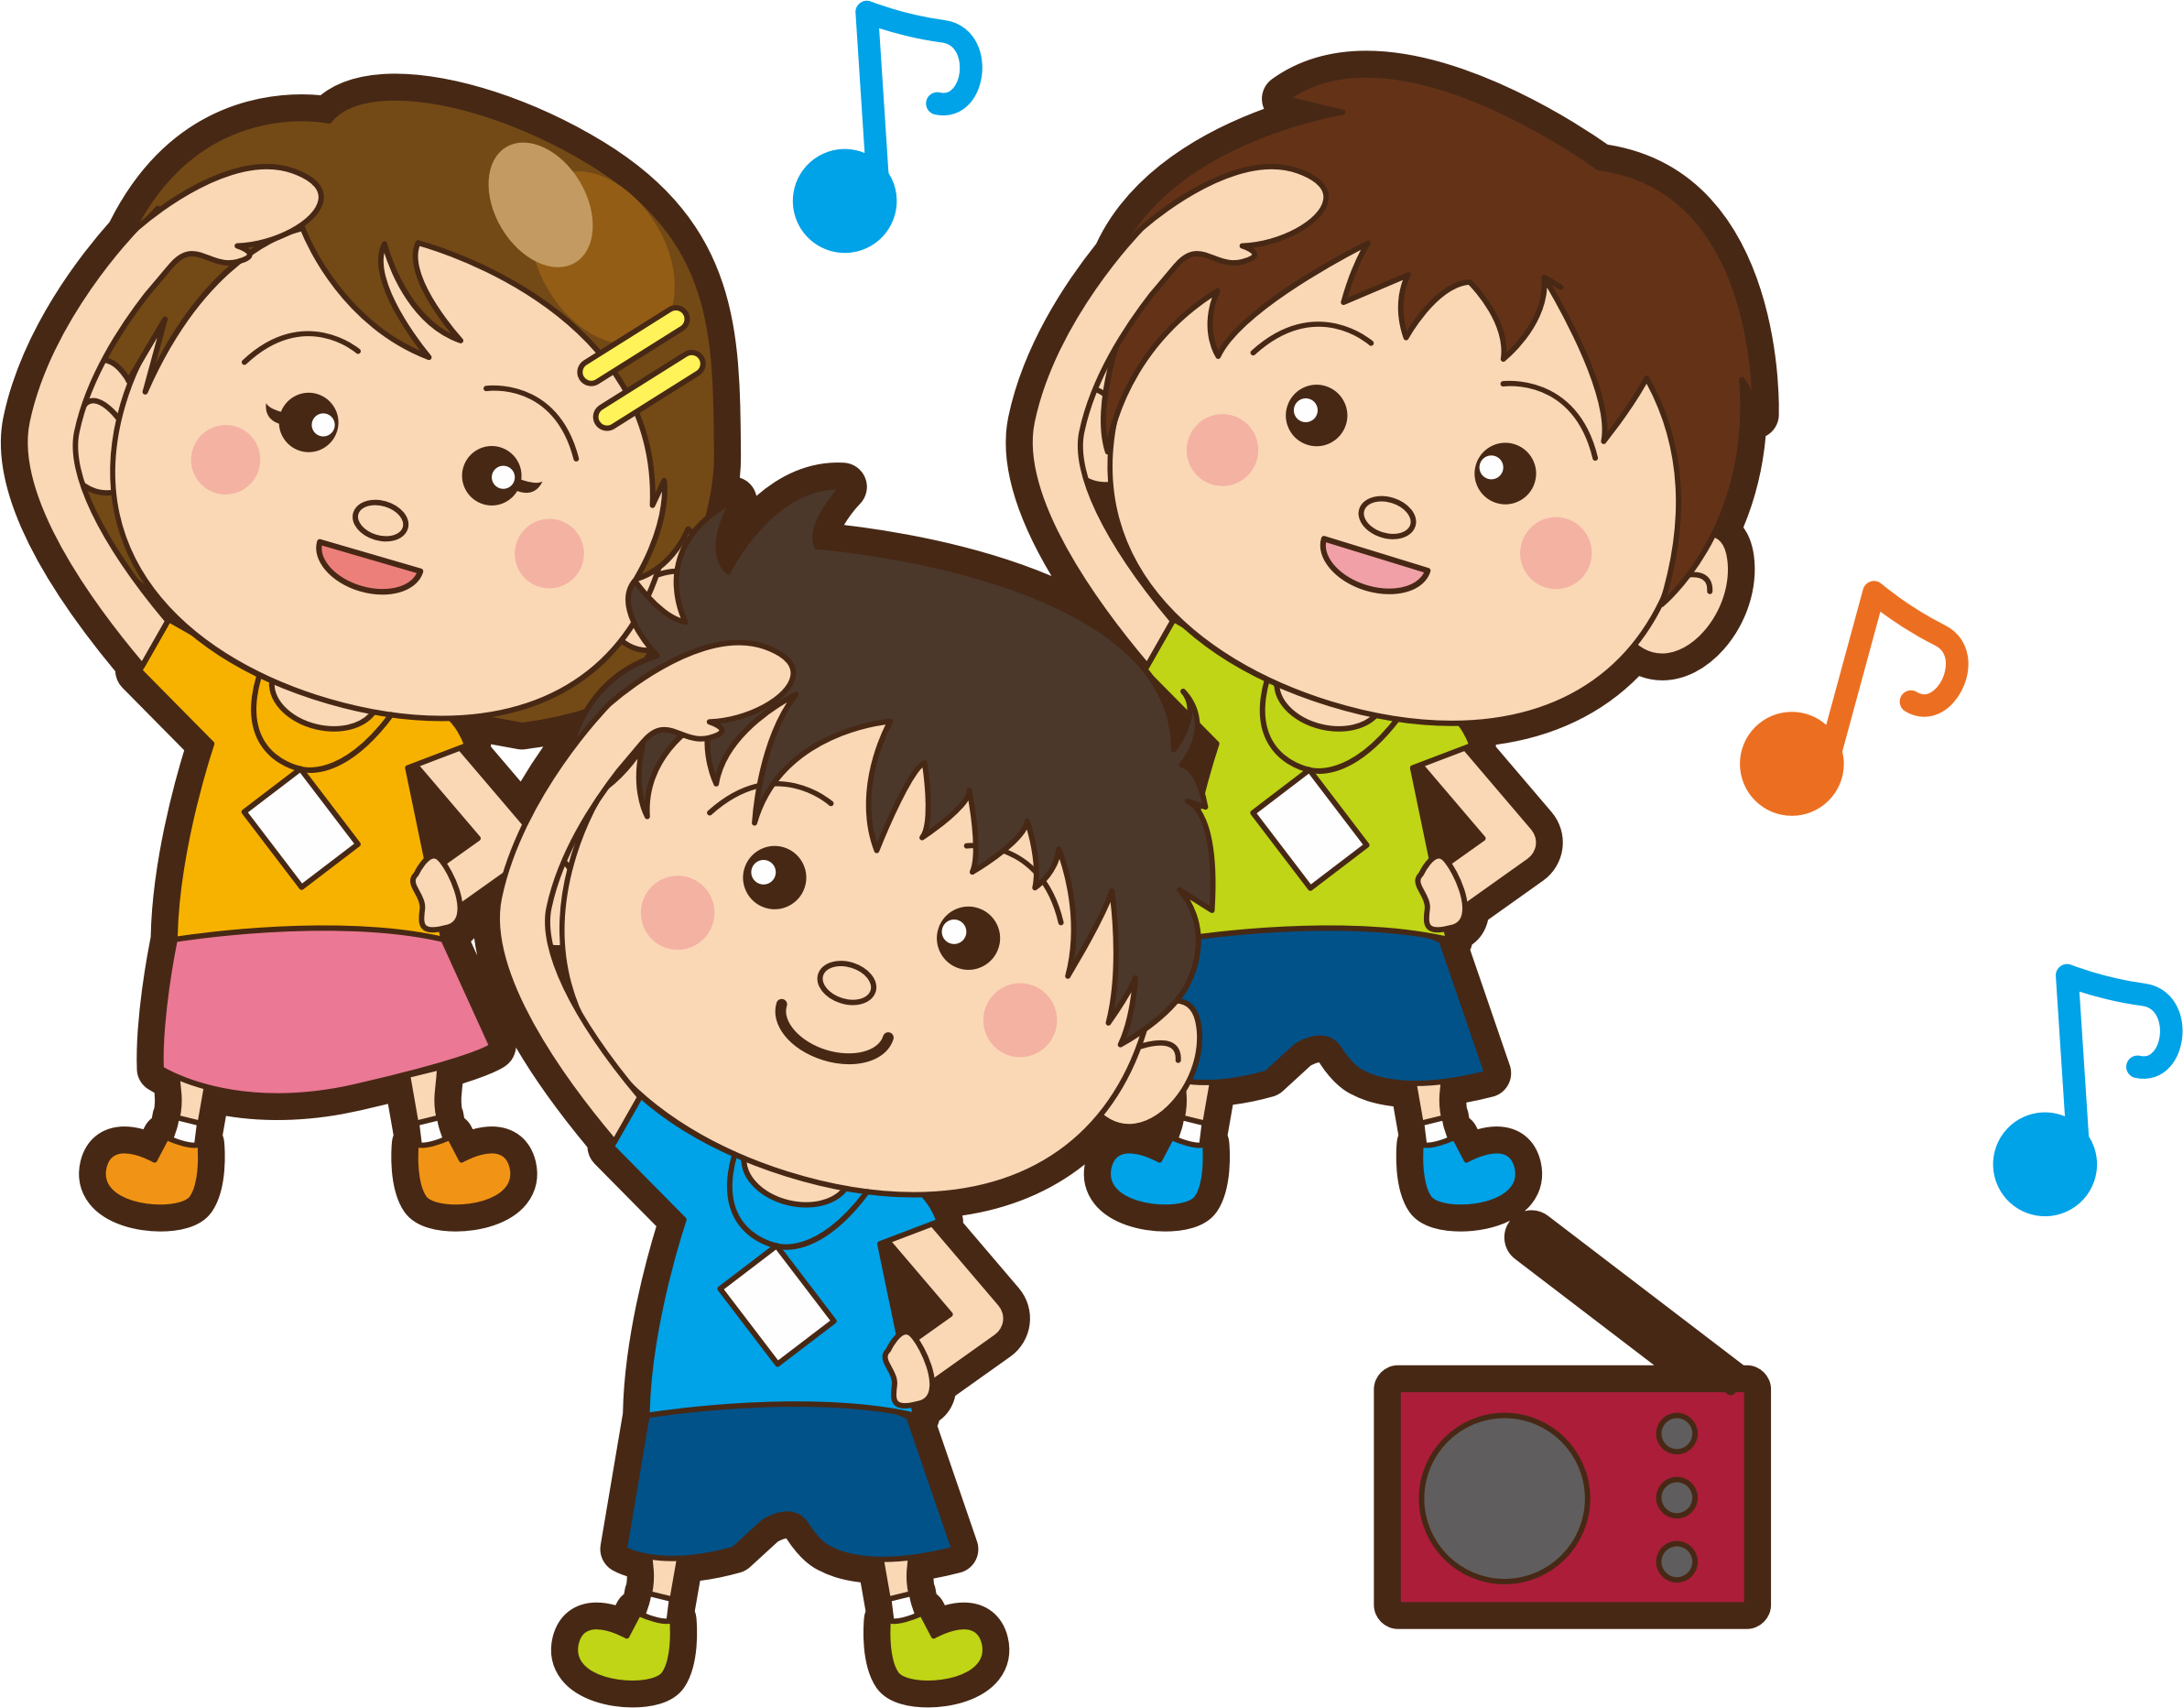 Children big image png. Exercising clipart exercise cartoon